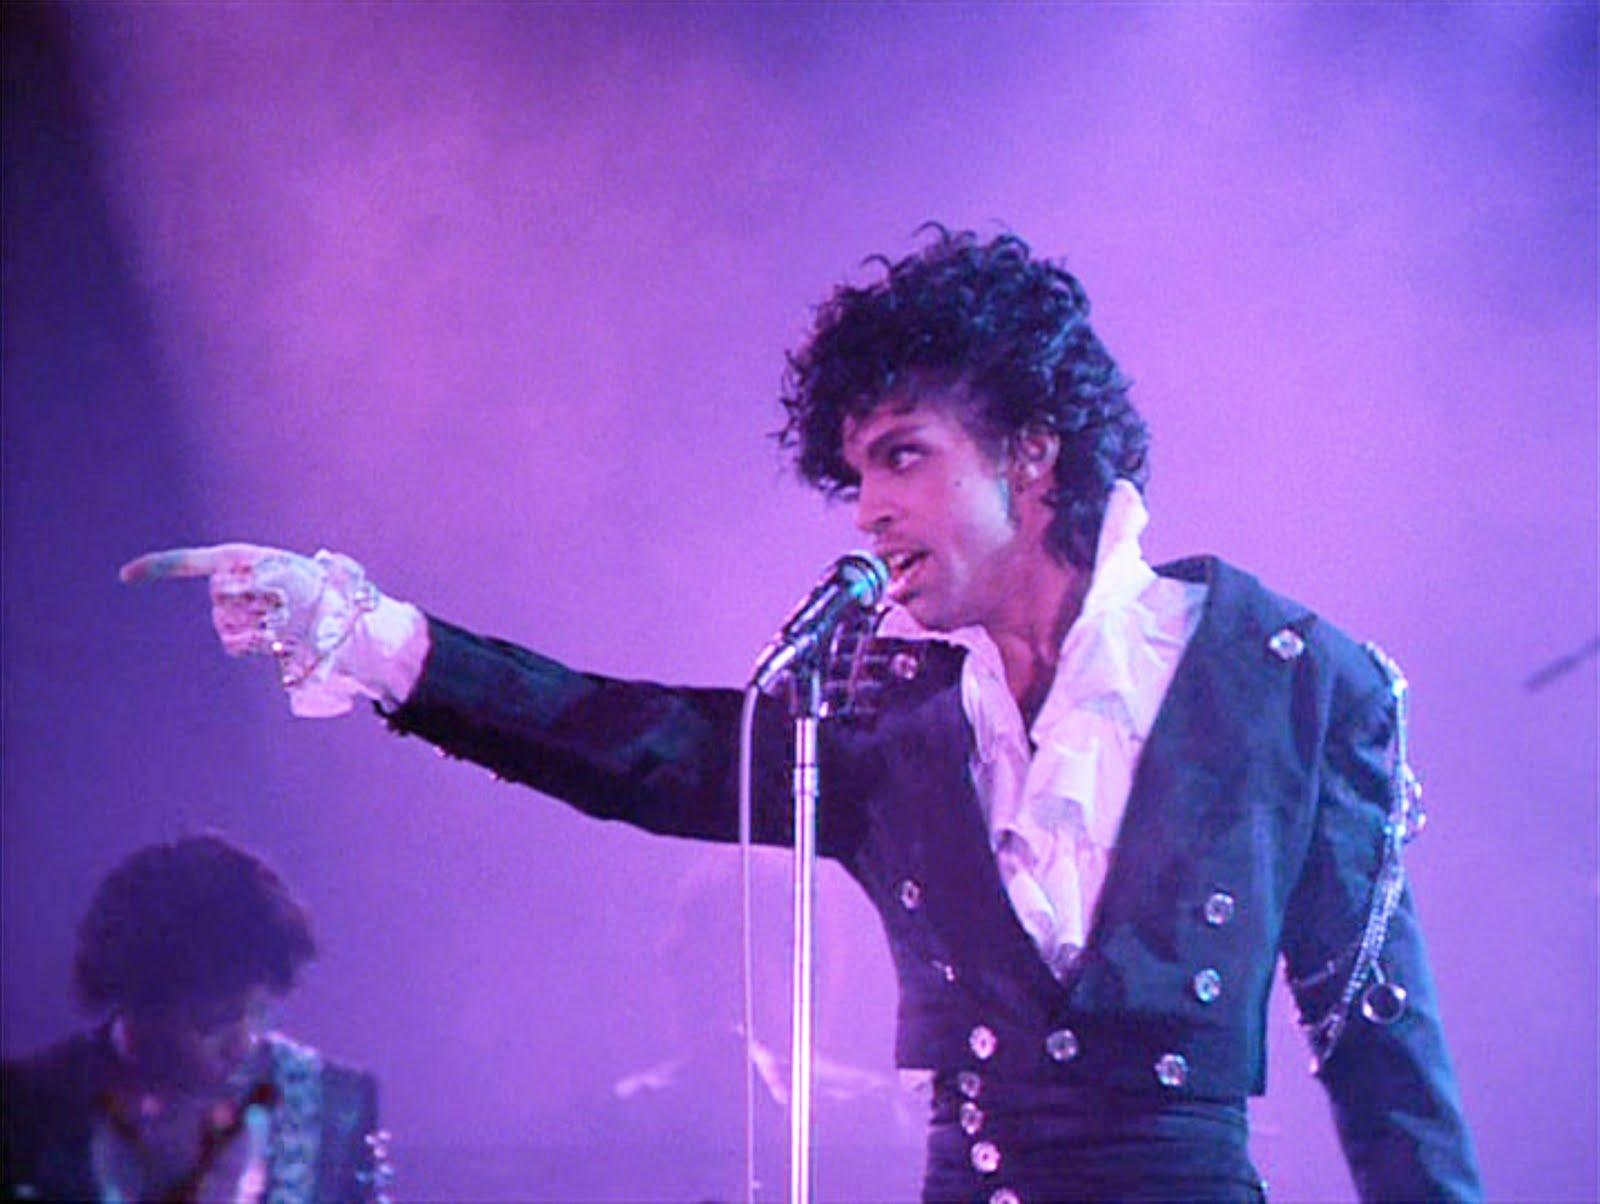 Photo courtesy of the Star Tribune: http://stmedia.startribune.com/images/ctyp_73ded5_prince-purp.jpg.